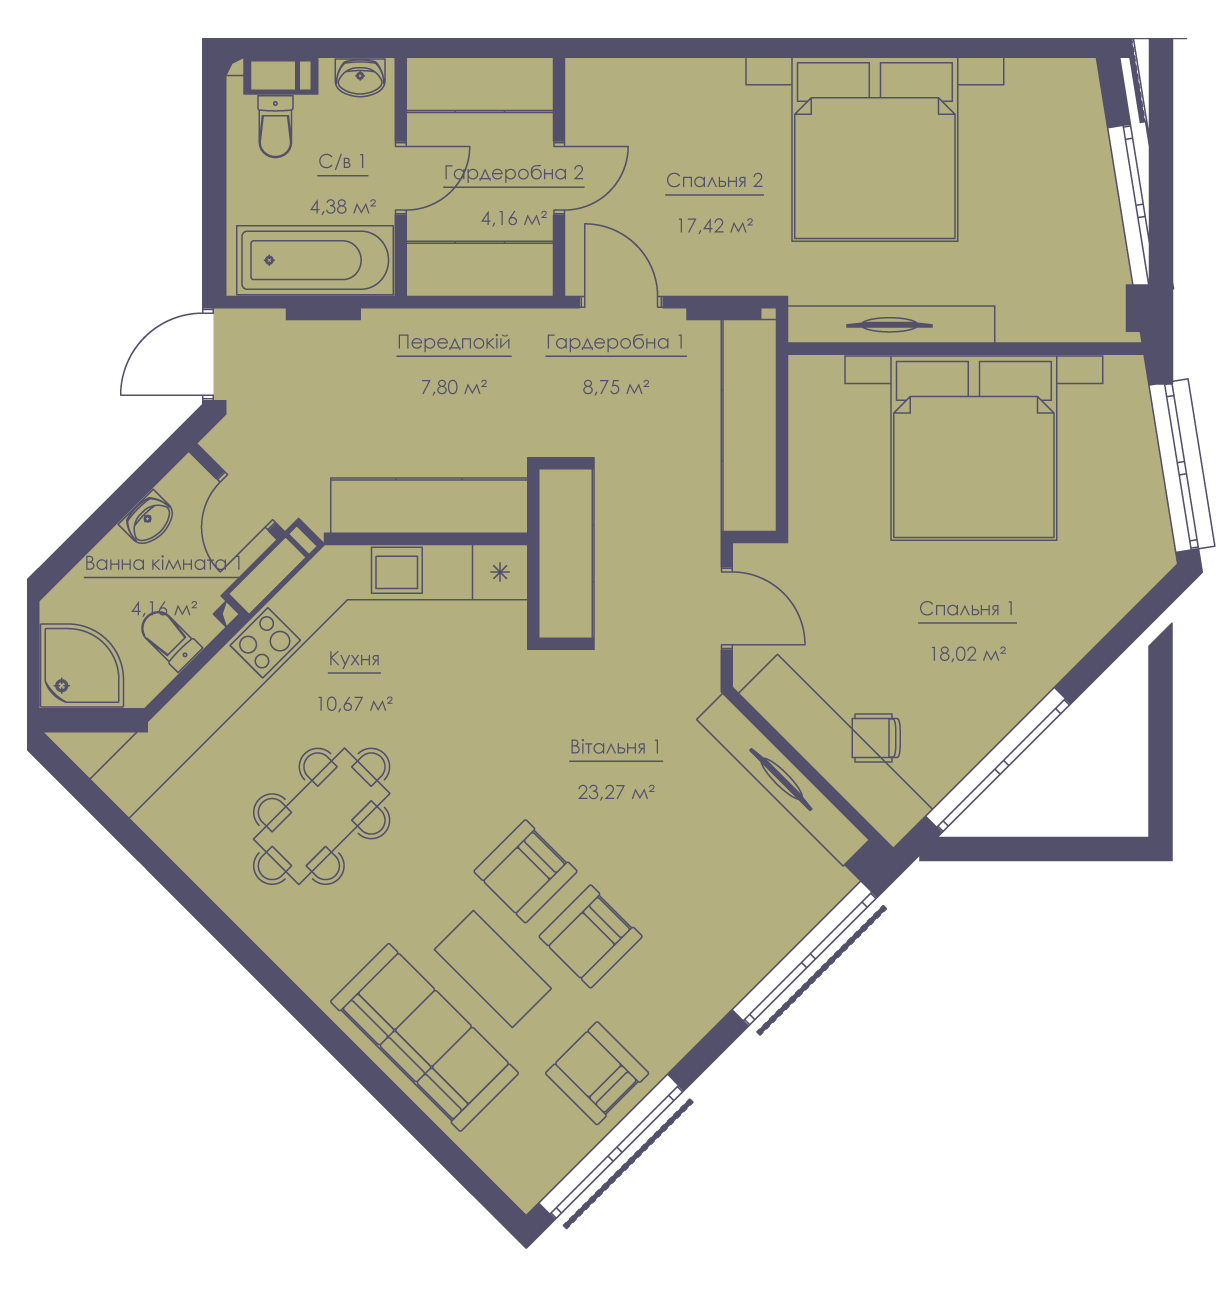 Apartment layout KV_112_3a_1_1_12-1